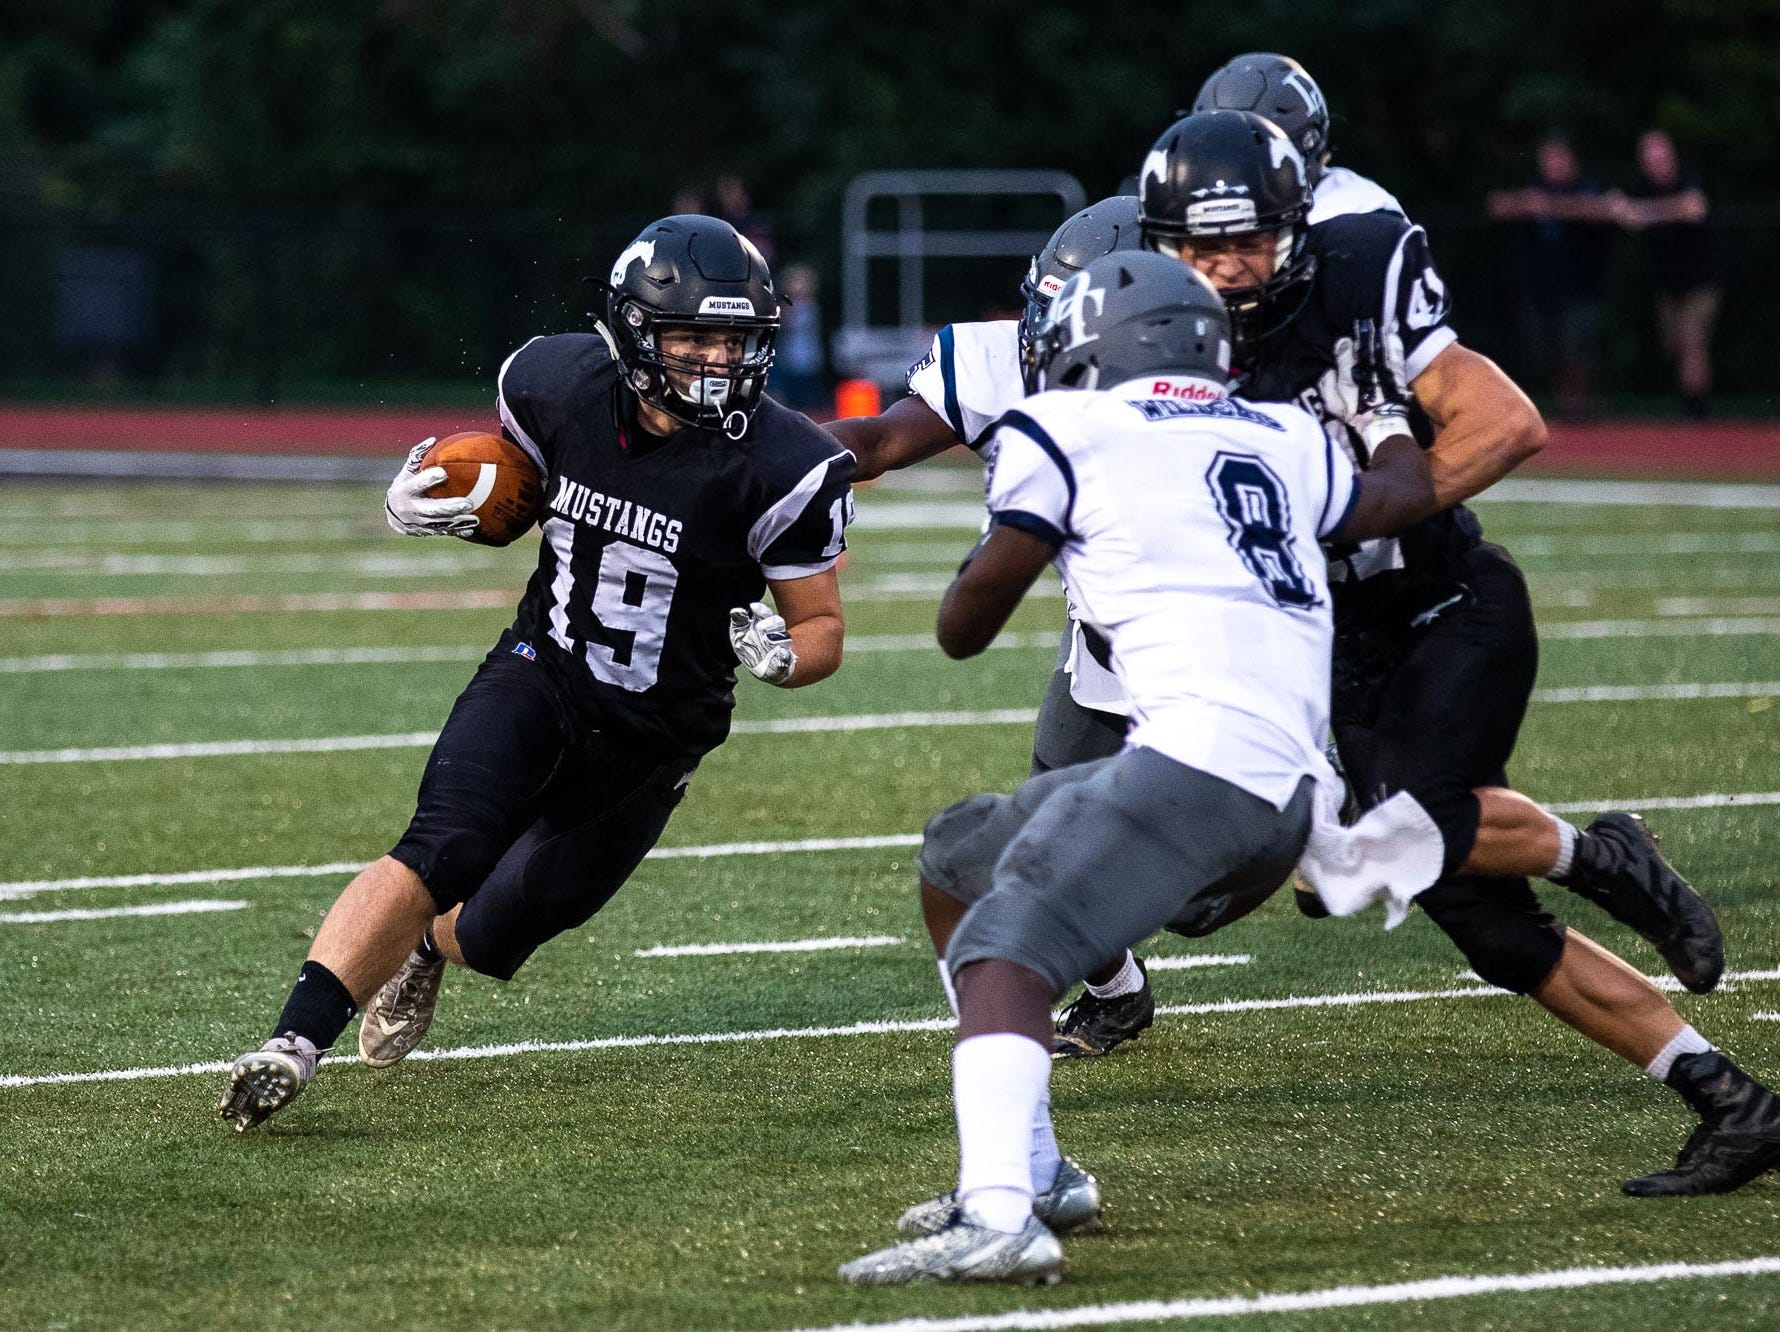 Photos: Dallastown at South Western